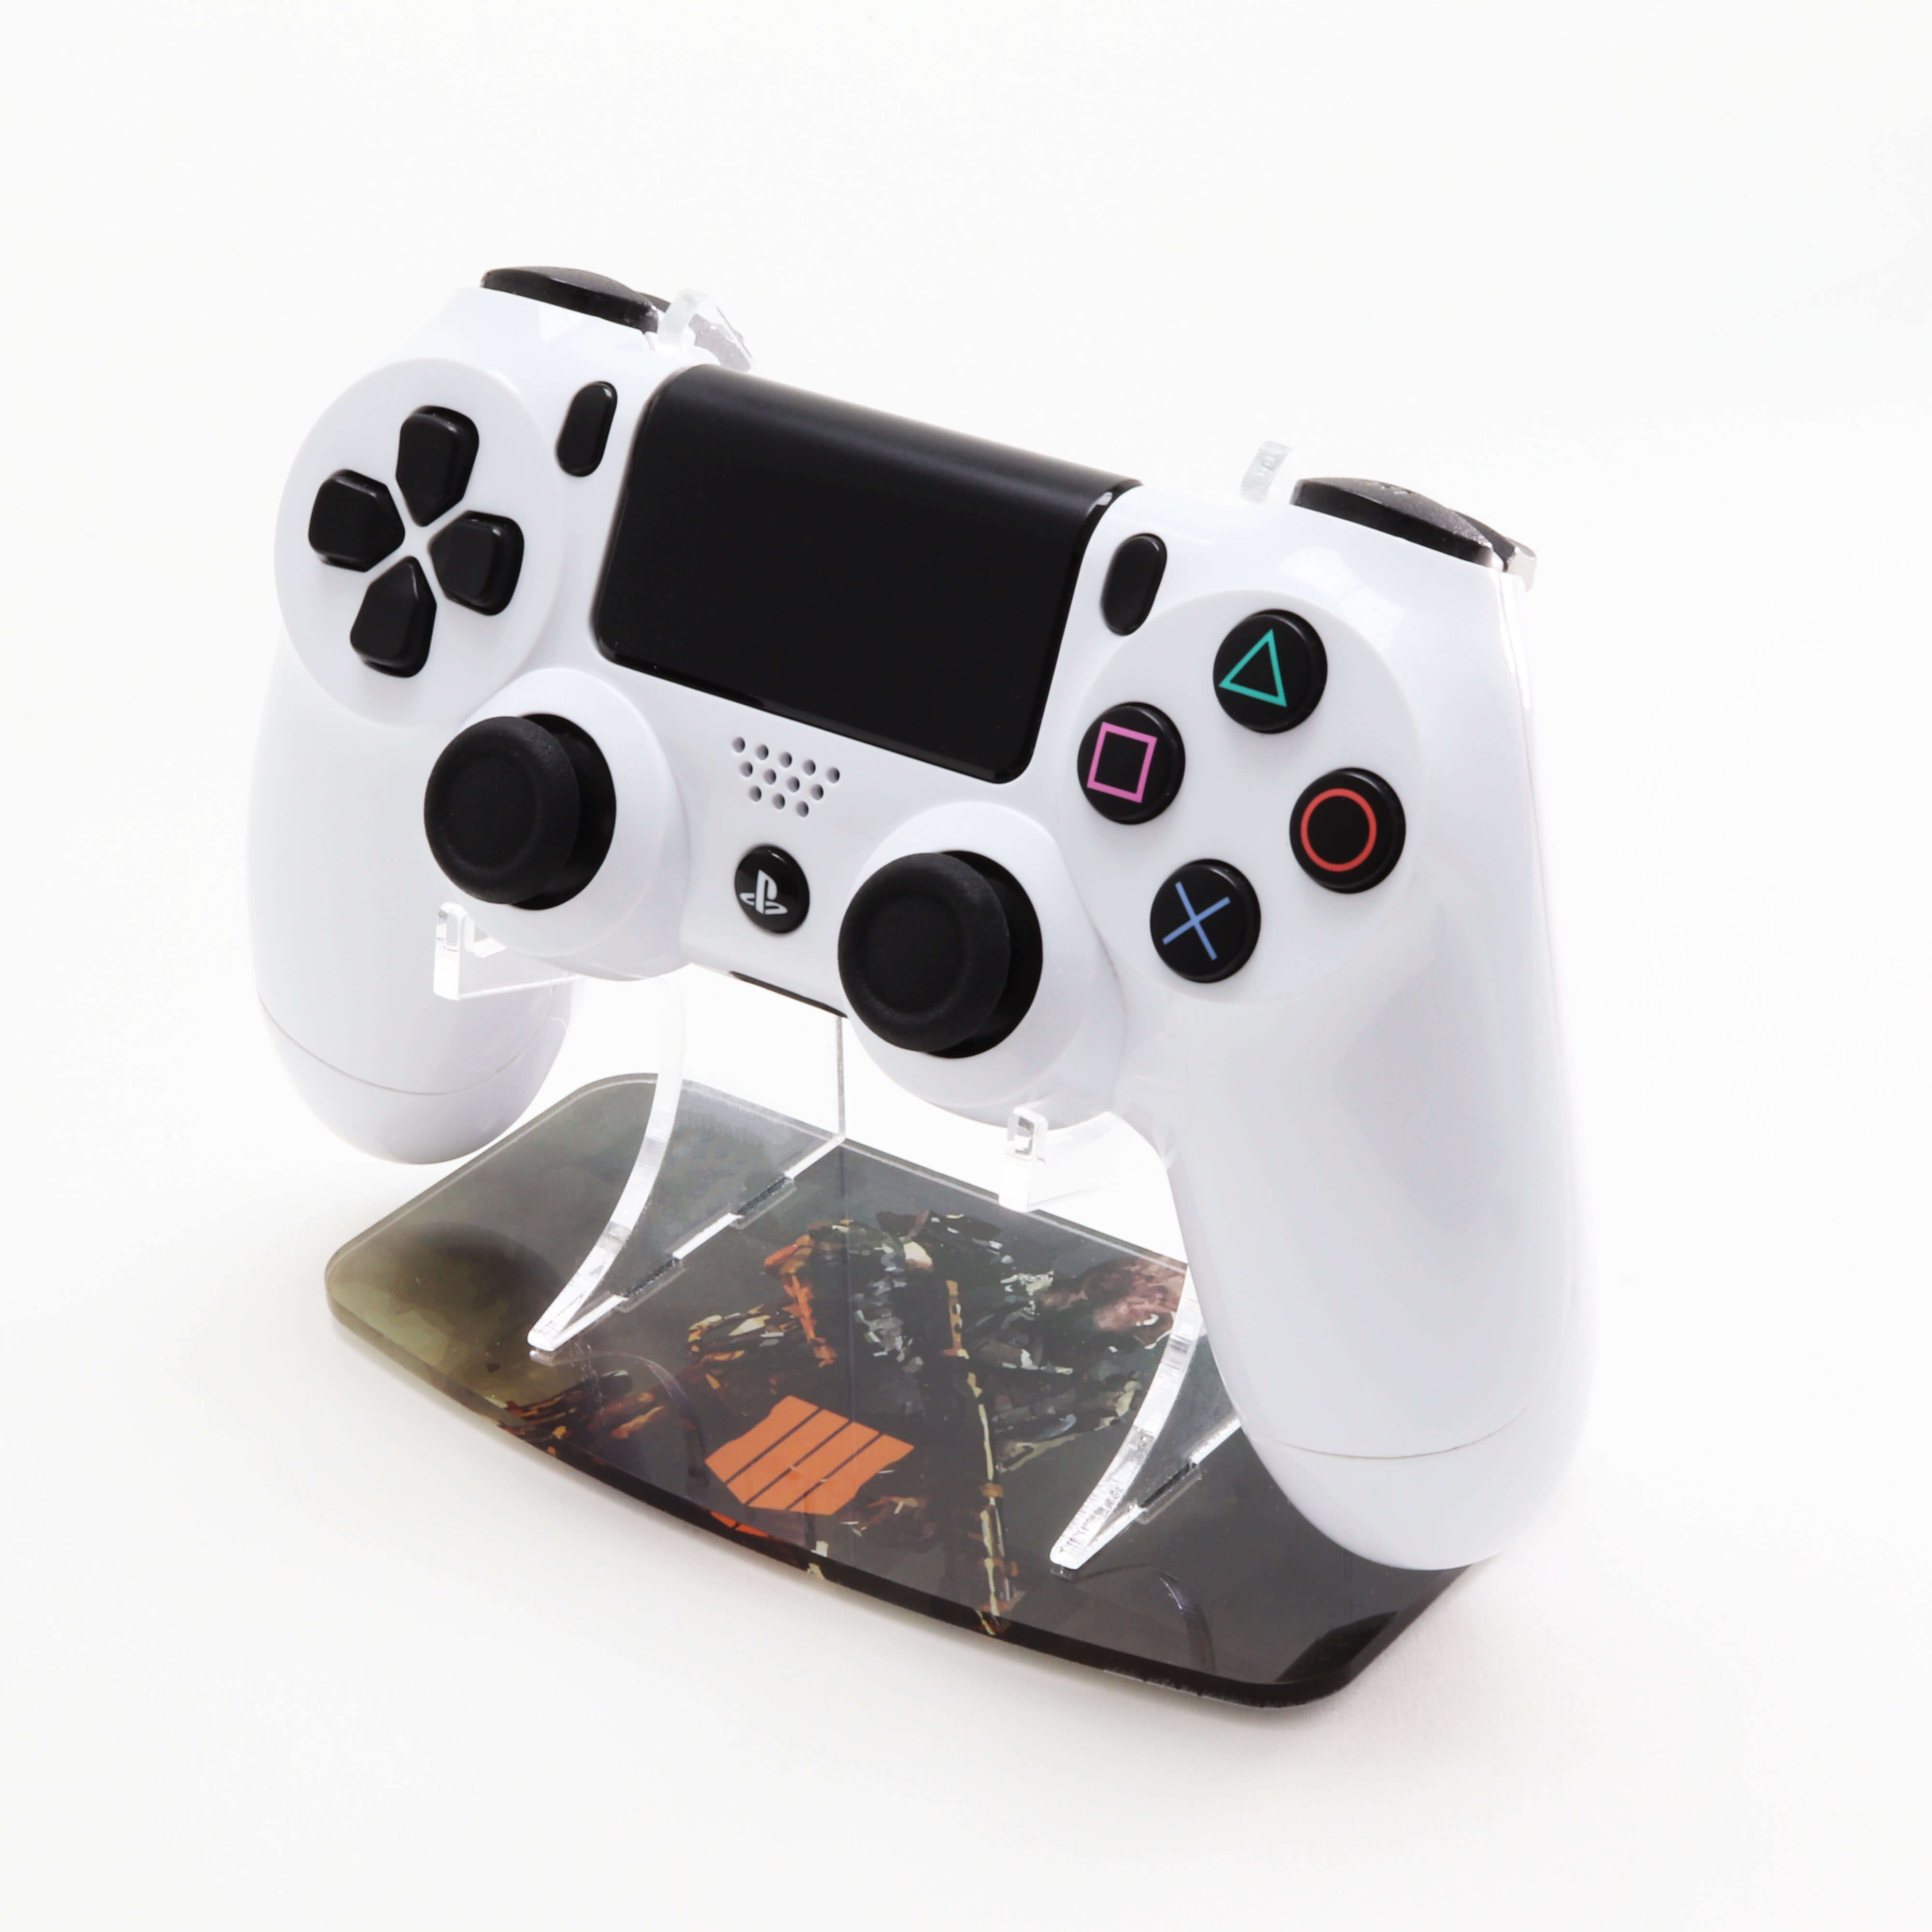 Call of Duty Black Ops 4 PlayStation 4 Printed Acrylic Controller Display Stand